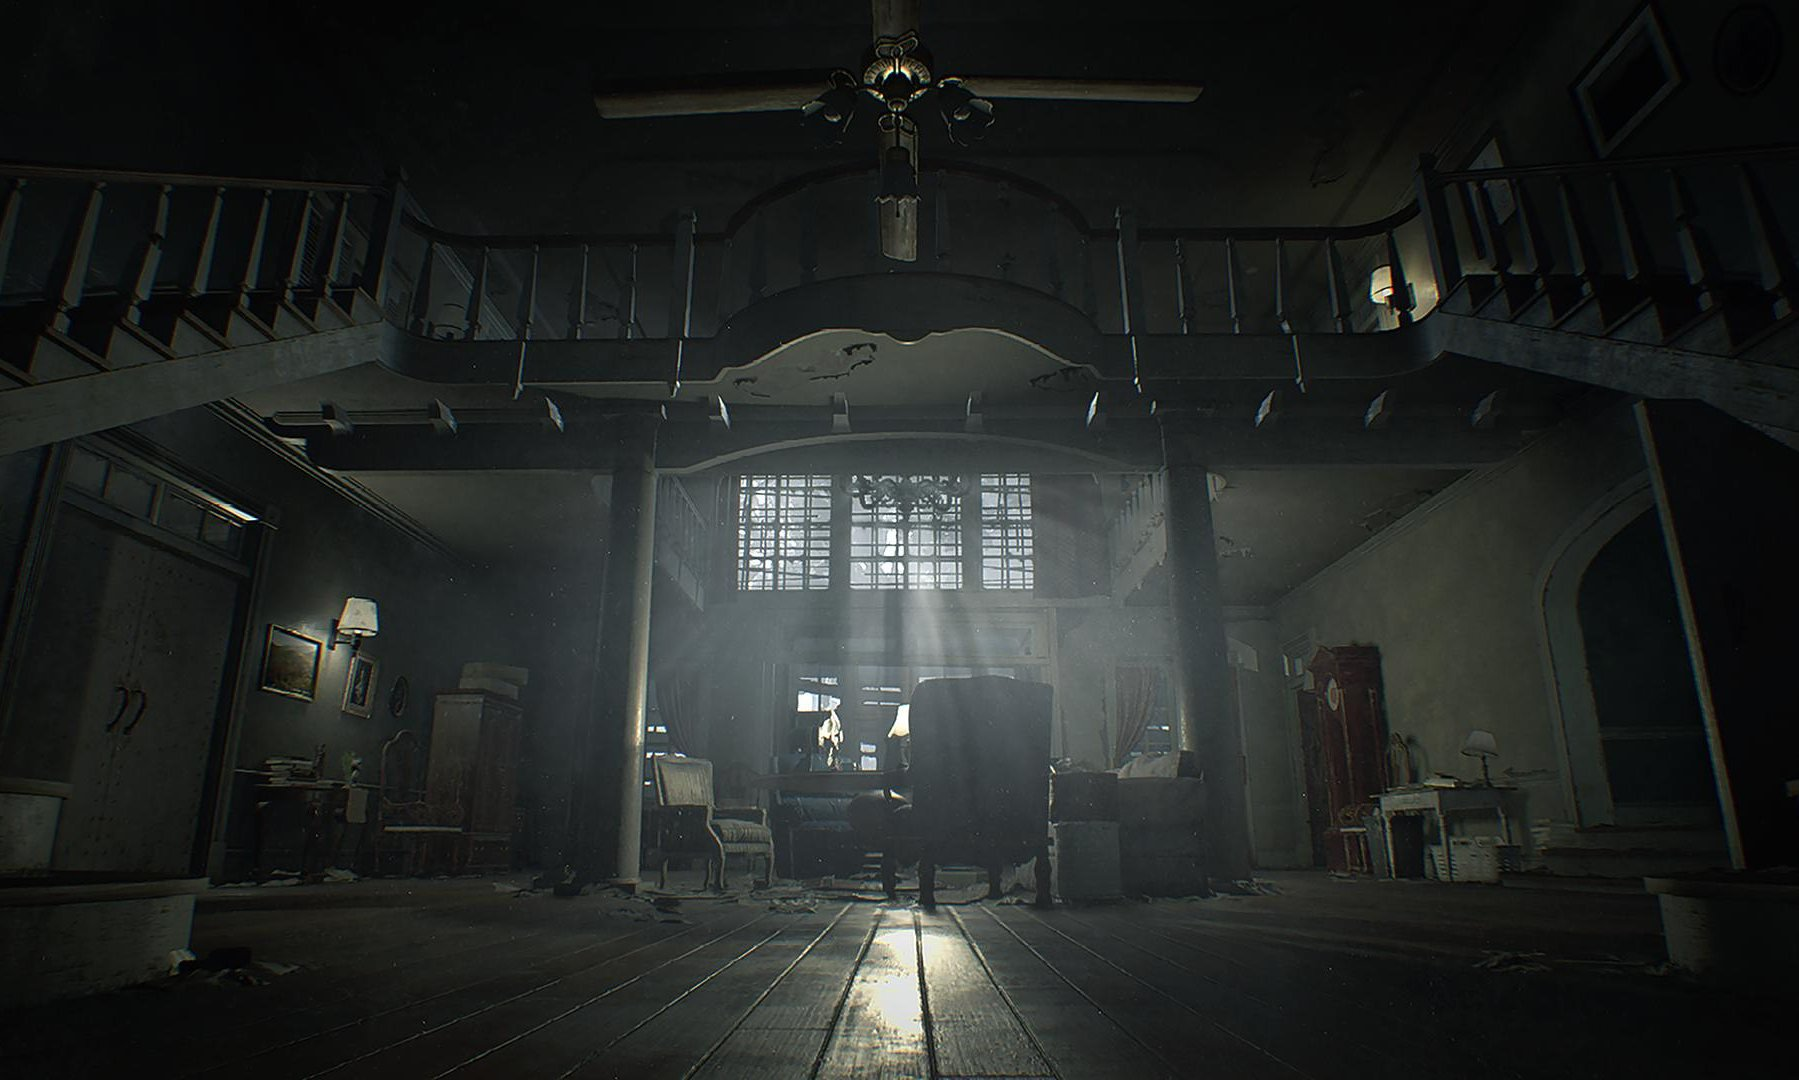 residentevil7_2